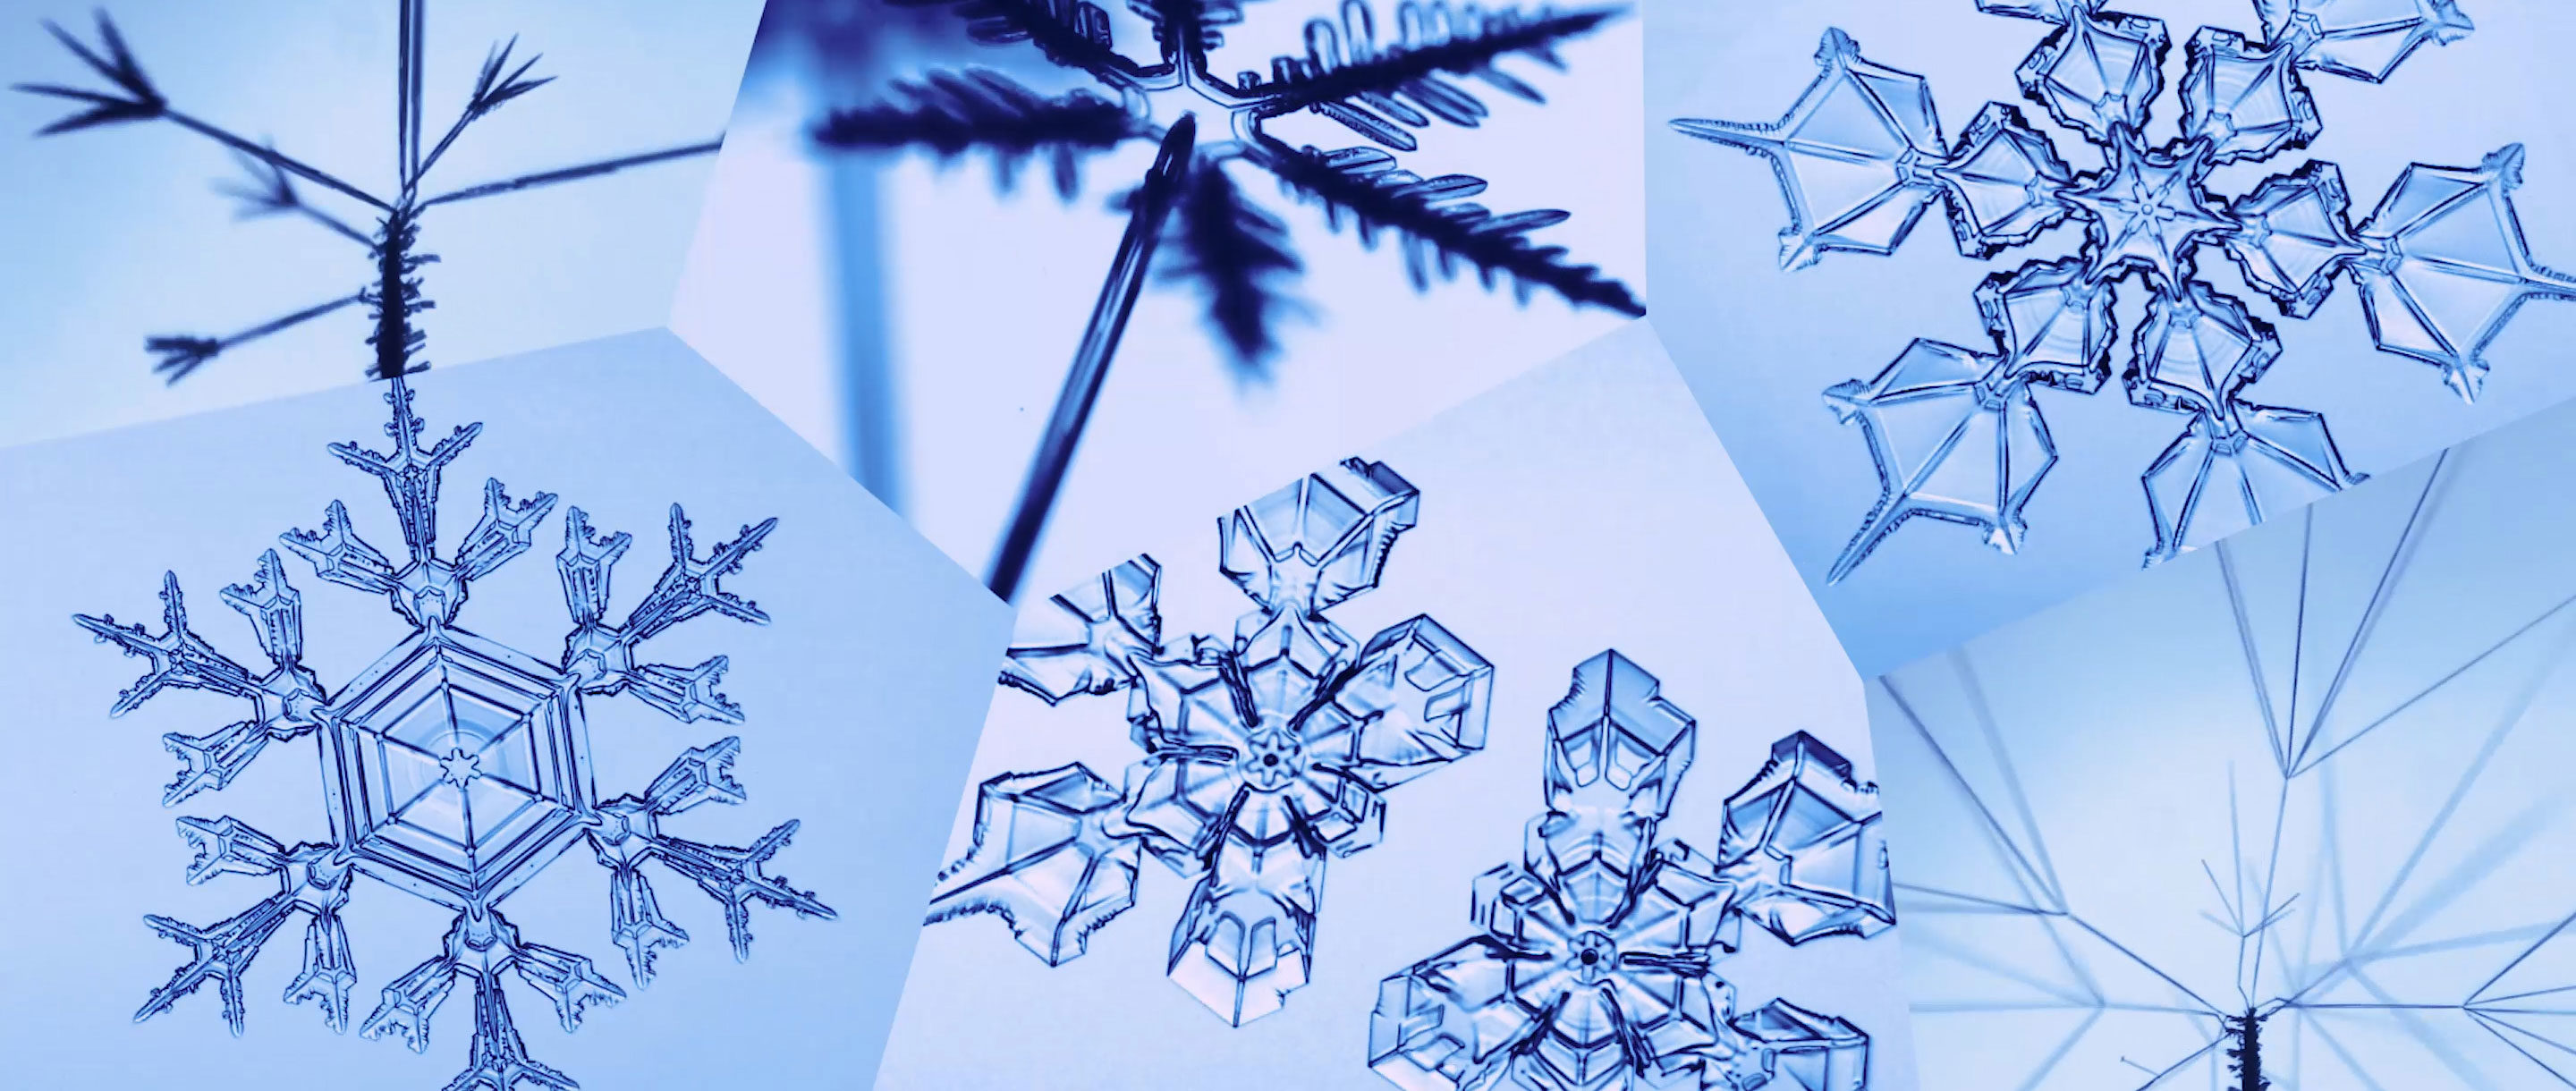 Six looping videos of different types of snowflakes and snow crystals growing.